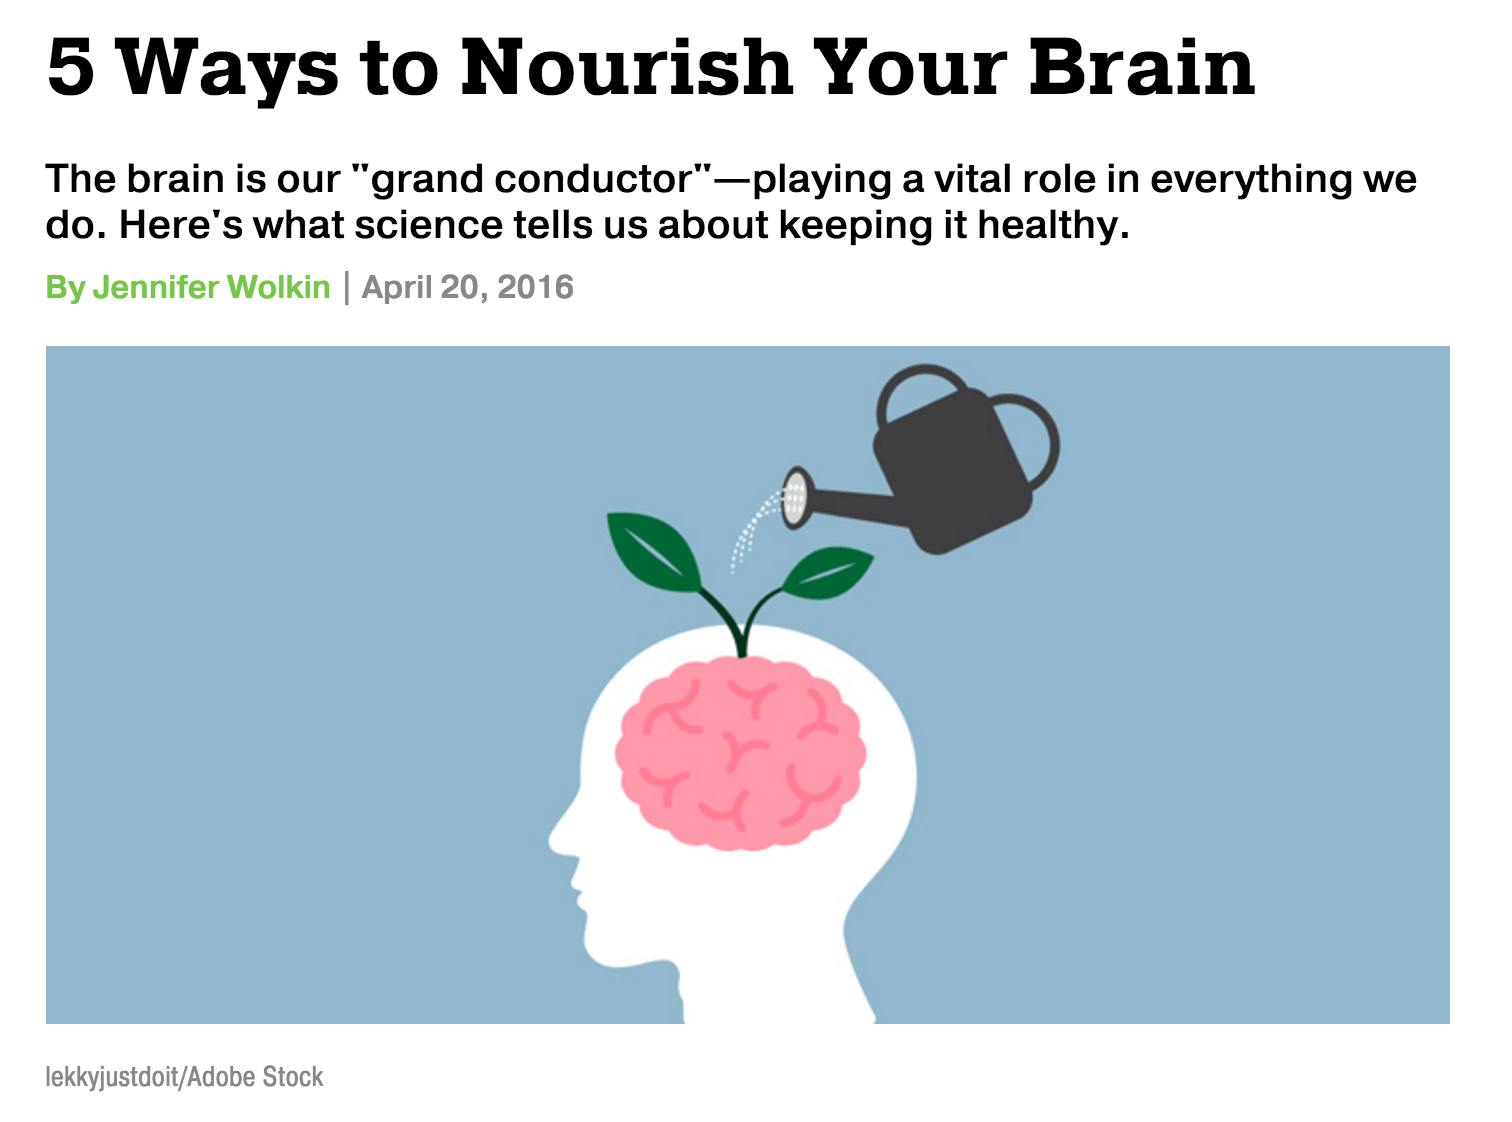 Repost: 5 Ways to Nourish Your Brain